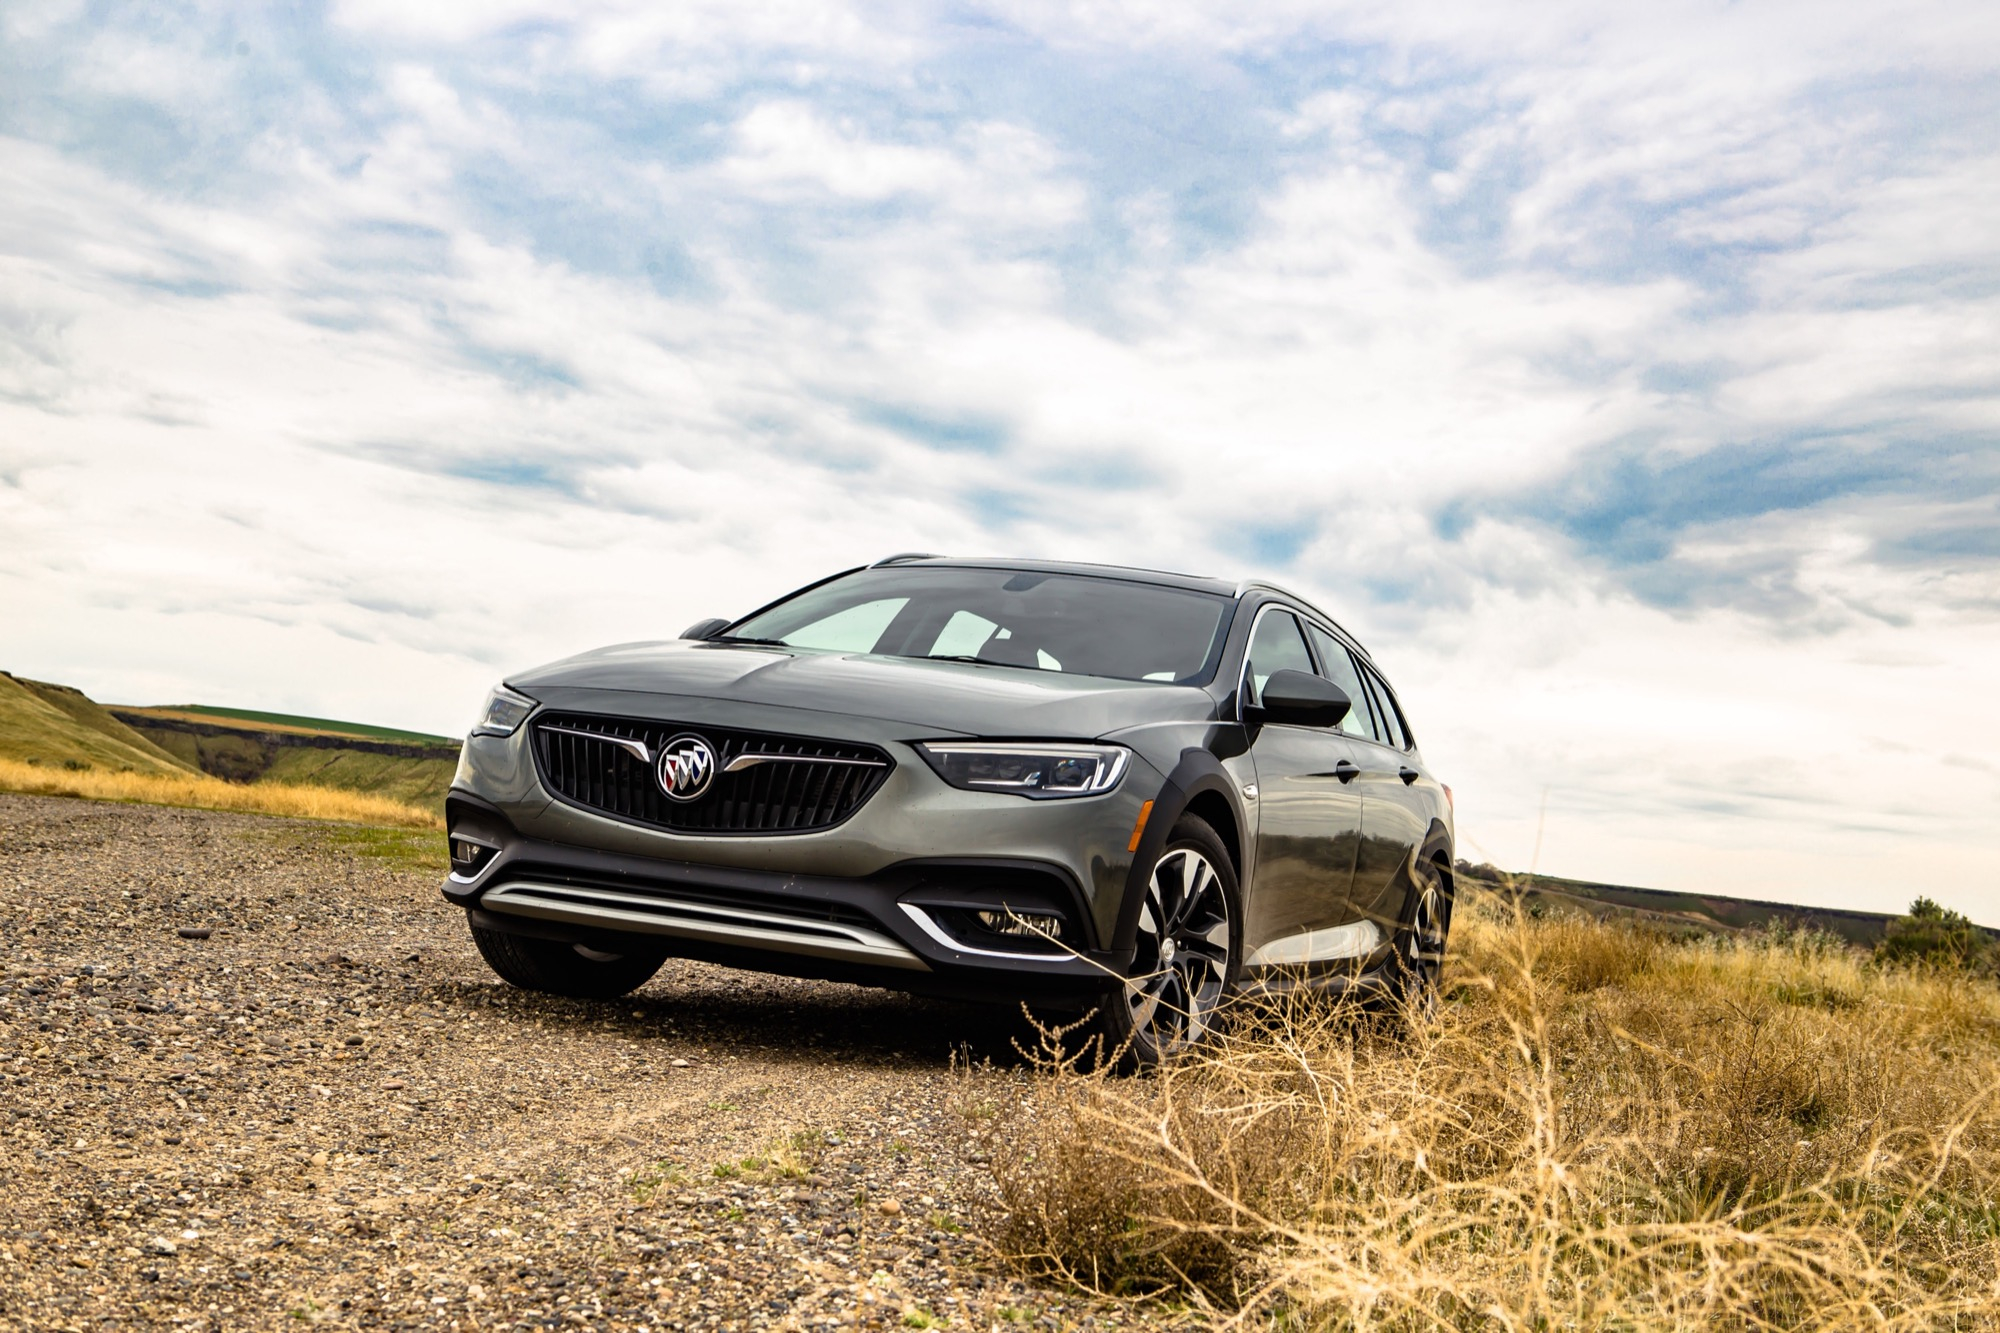 Does Buick Even Want To Sell The Regal Tourx? | Gm Authority New 2022 Buick Regal Tourx Discontinued, Mpg, Engine